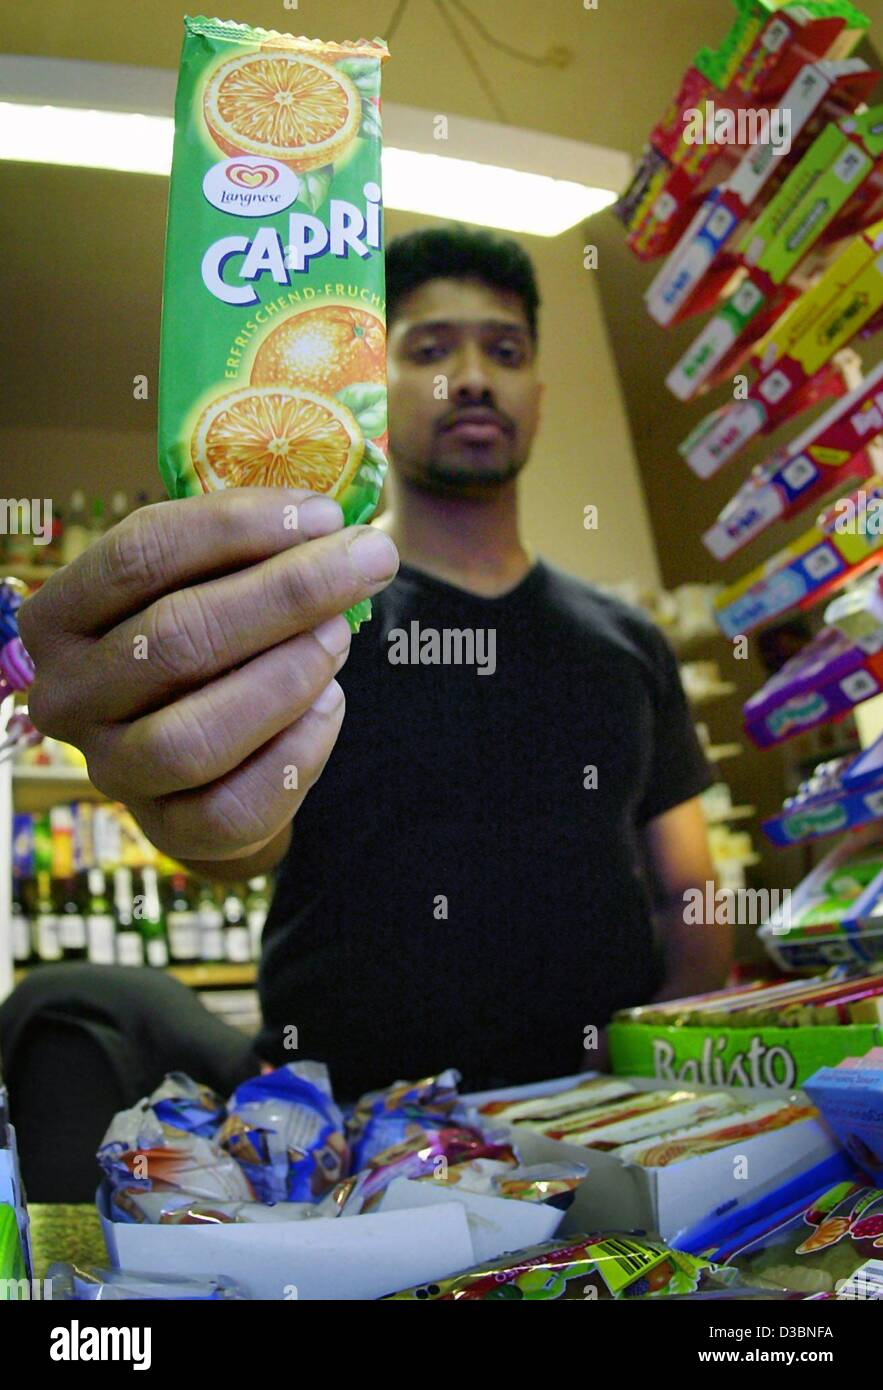 (dpa) - A shop assistant holds a Capri water ice with orange flavour from Langnese into the camera at a kiosk in - Stock Image